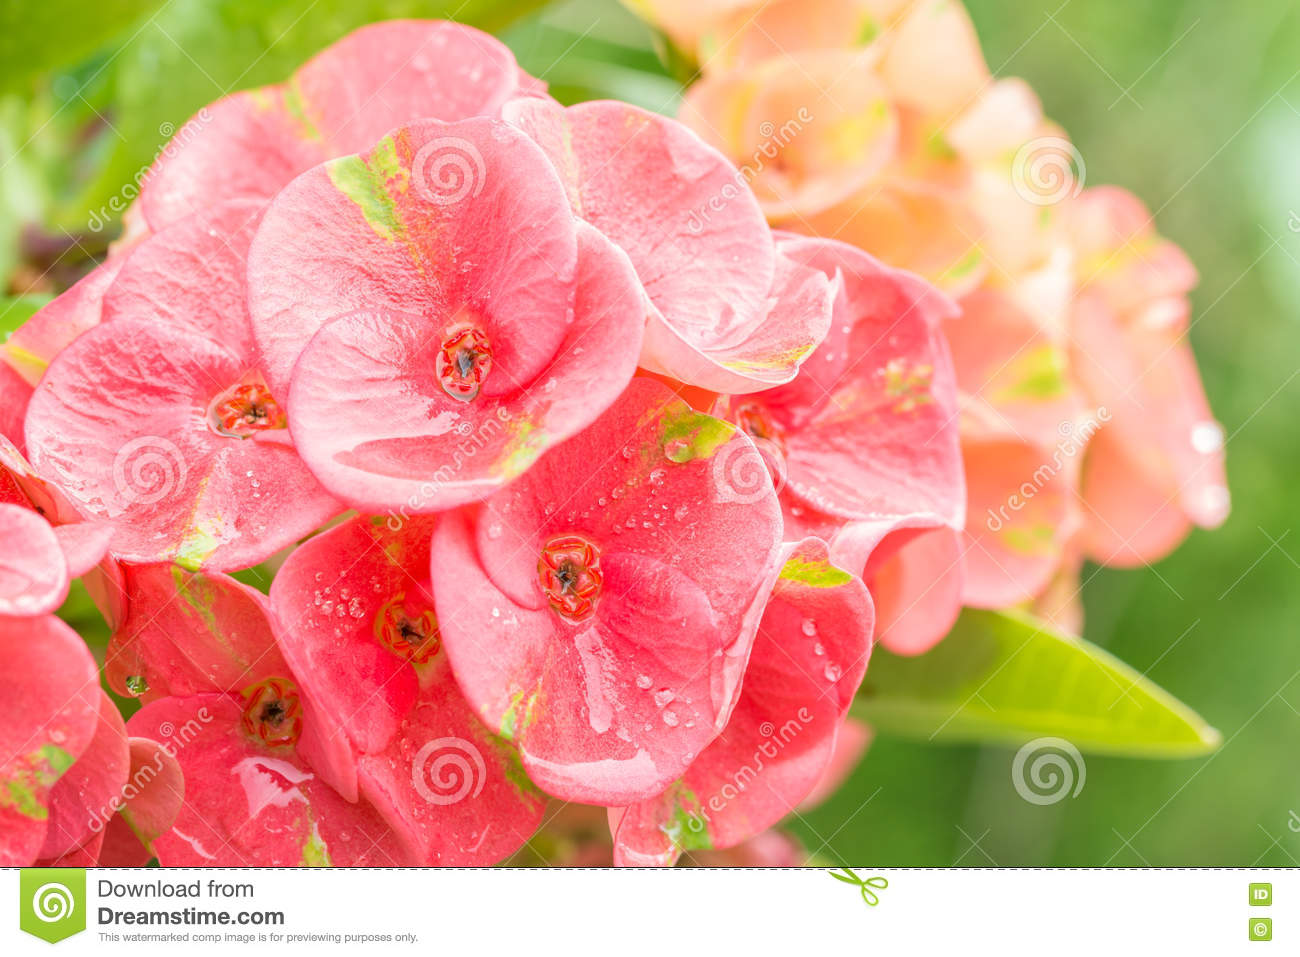 Pink flowers euphorbia crown of thorns christ thorn stock photo pink flowers euphorbia crown of thorns and christ thorn with water droplets and green leaves blurred background in soft color and blur style mightylinksfo